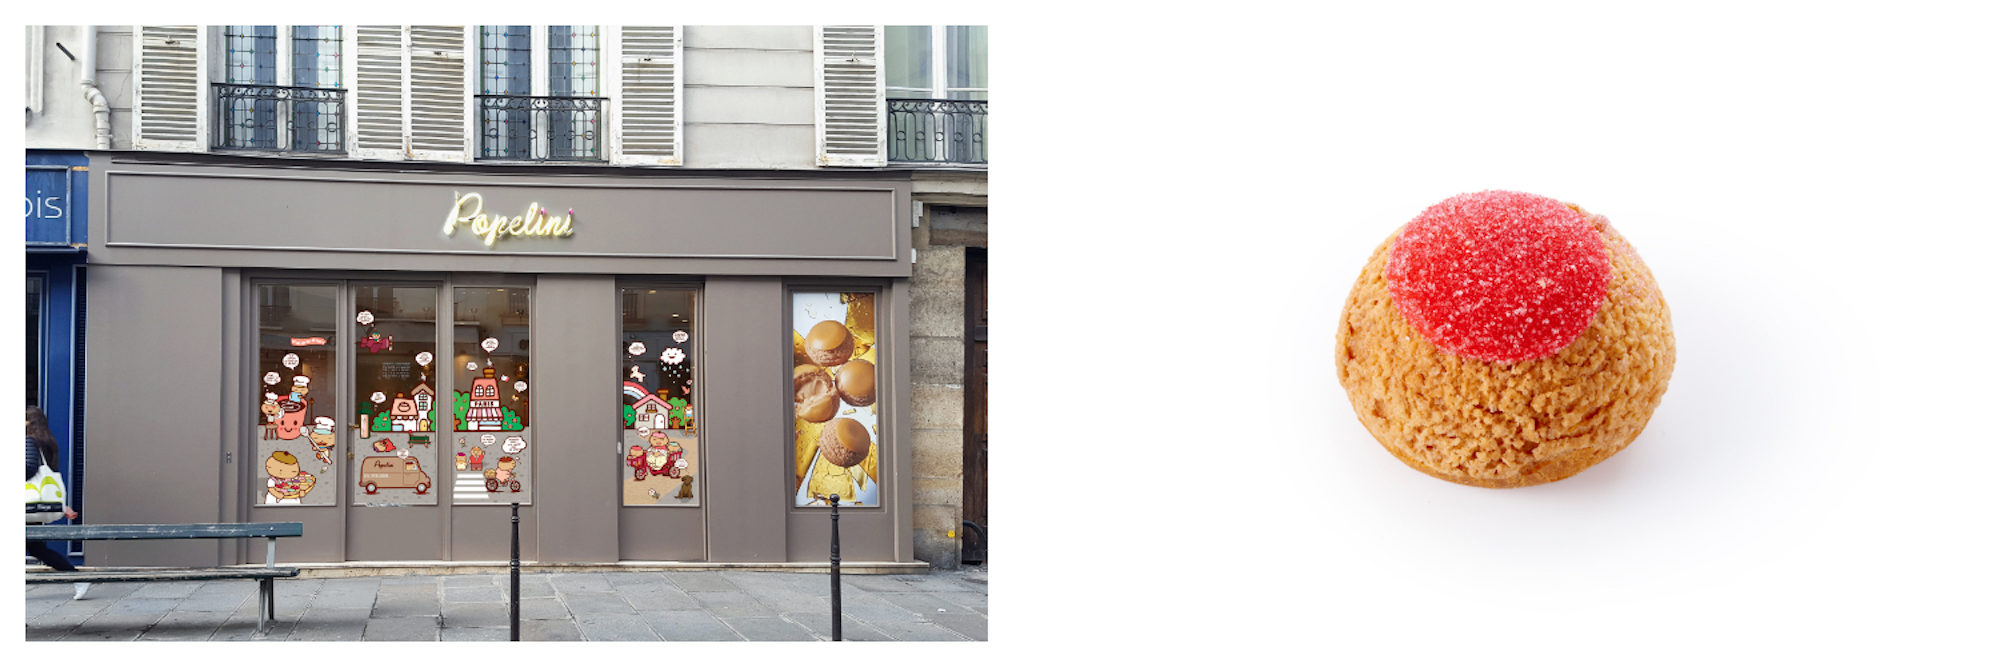 Outside chou patisserie Popelini (left). A chou with fruity filling against a white background (right).